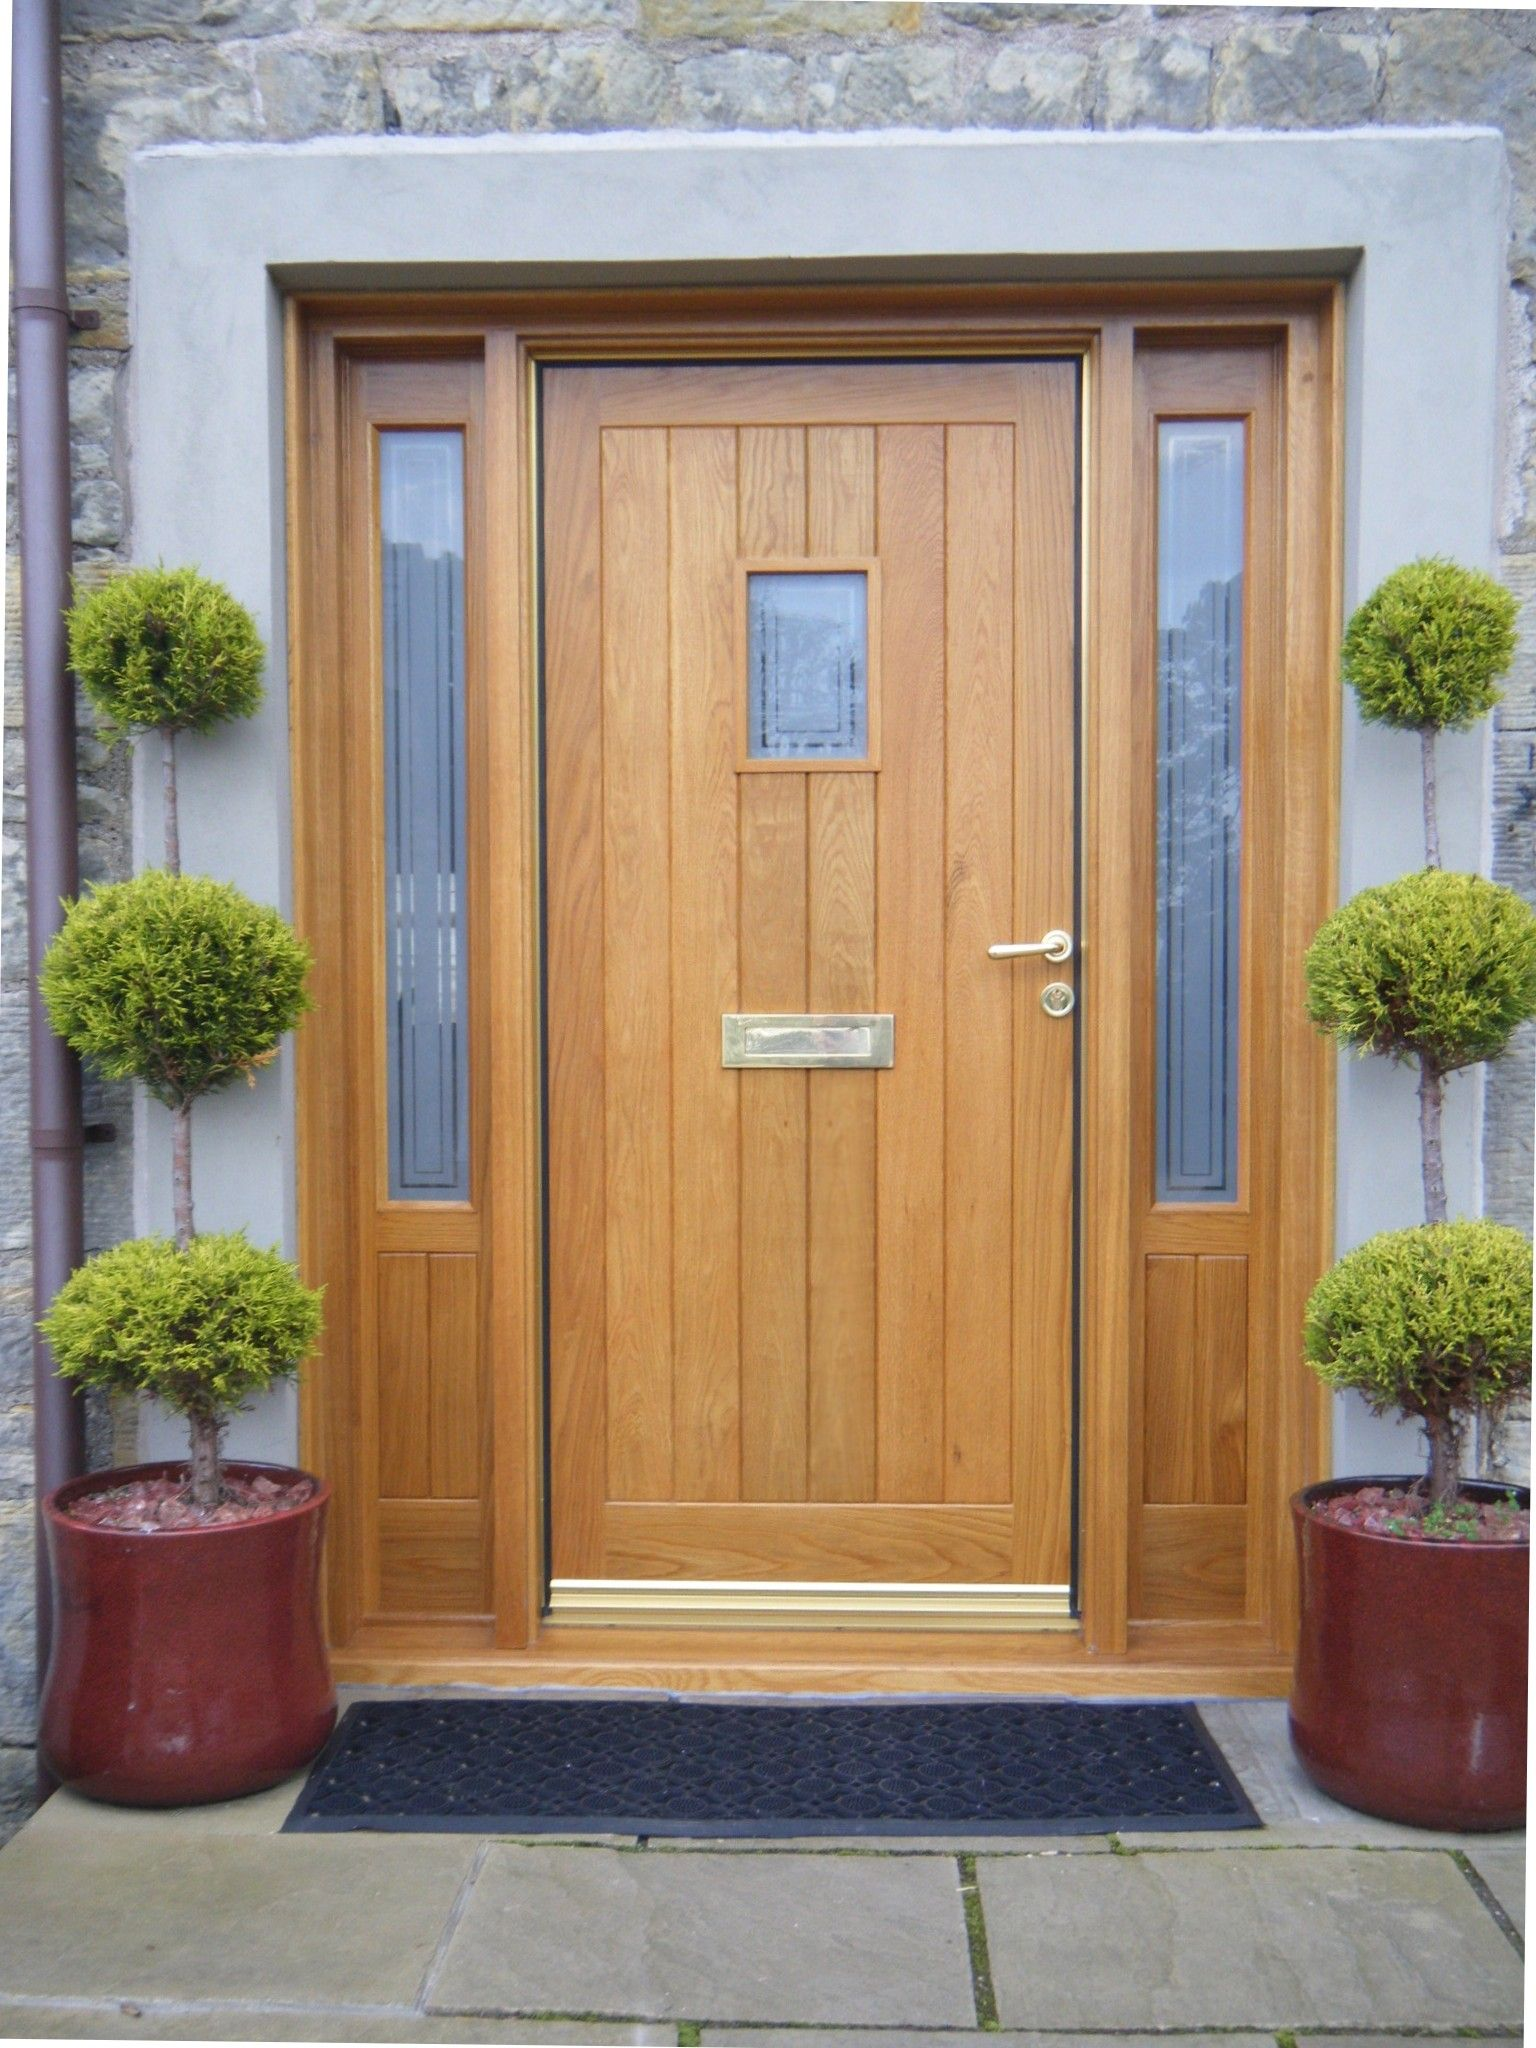 2048 #936838  Front Front Porch Uk Upvc Front Door Wooden Front Doors Wooden Windows wallpaper Real Wood Front Doors 39151536